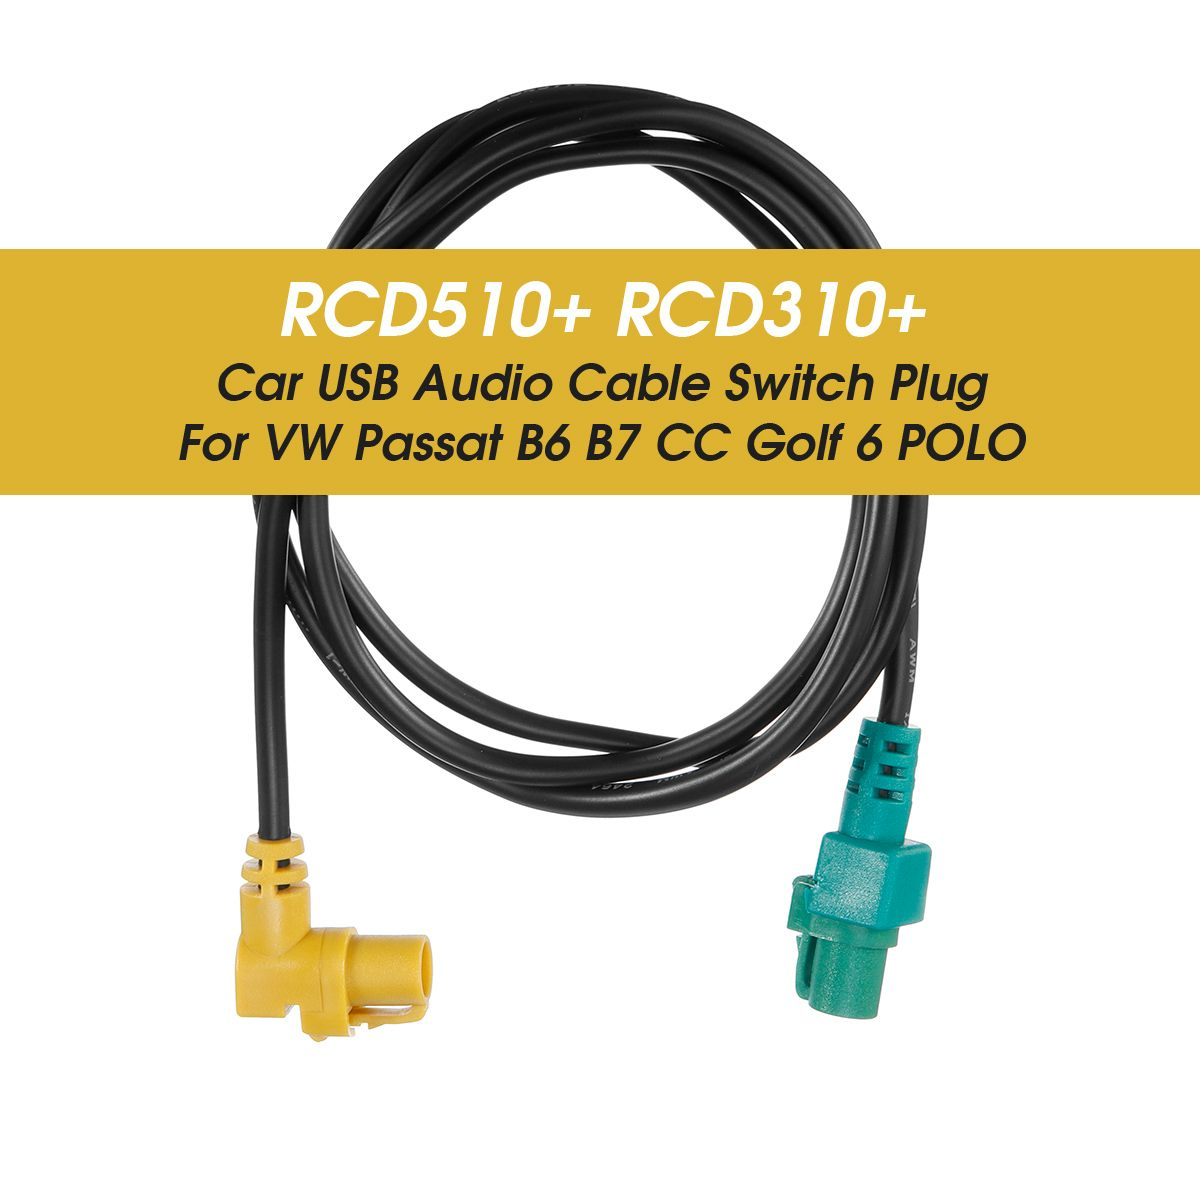 RCD510+ RCD310+ Car <font><b>USB</b></font> Audio Cable Switch Plug Adapter Kit for VW for Passat B6 B7 CC <font><b>Golf</b></font> <font><b>6</b></font> for POLO image